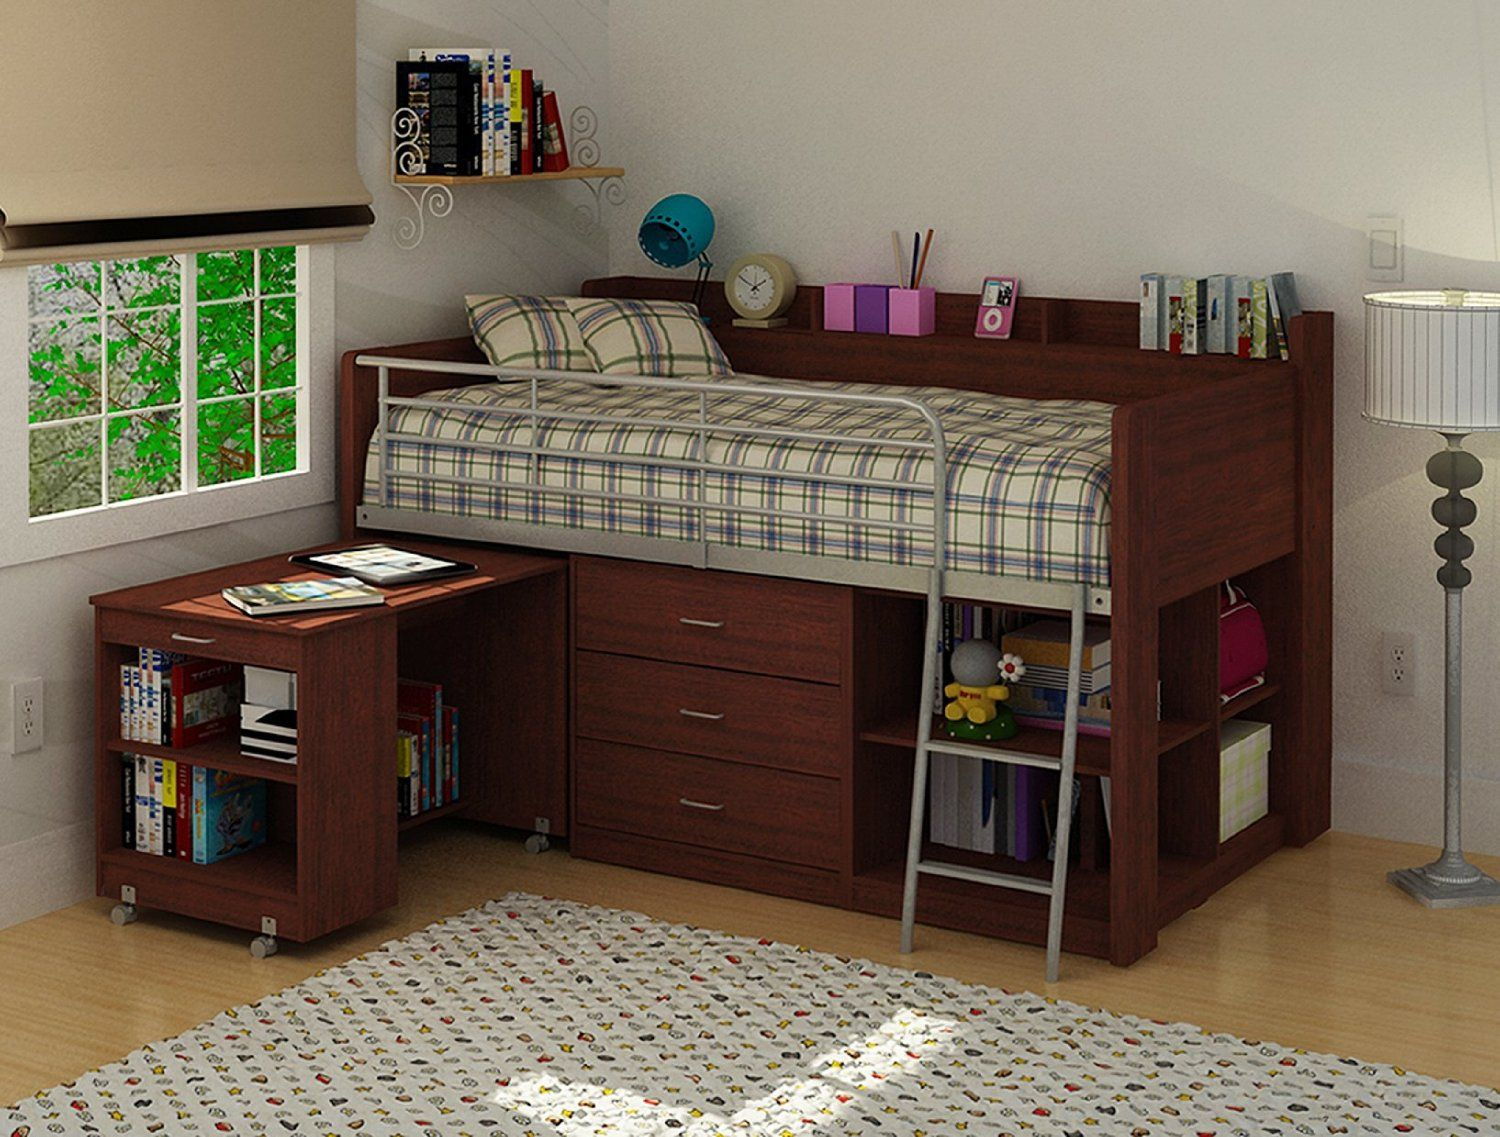 Bed And Desk Combo Furniture Living Room Sets For Small Living Rooms Check More At Http Www Gameintown Com Bed And Desk Combo F Kids Loft Beds Low Loft Beds